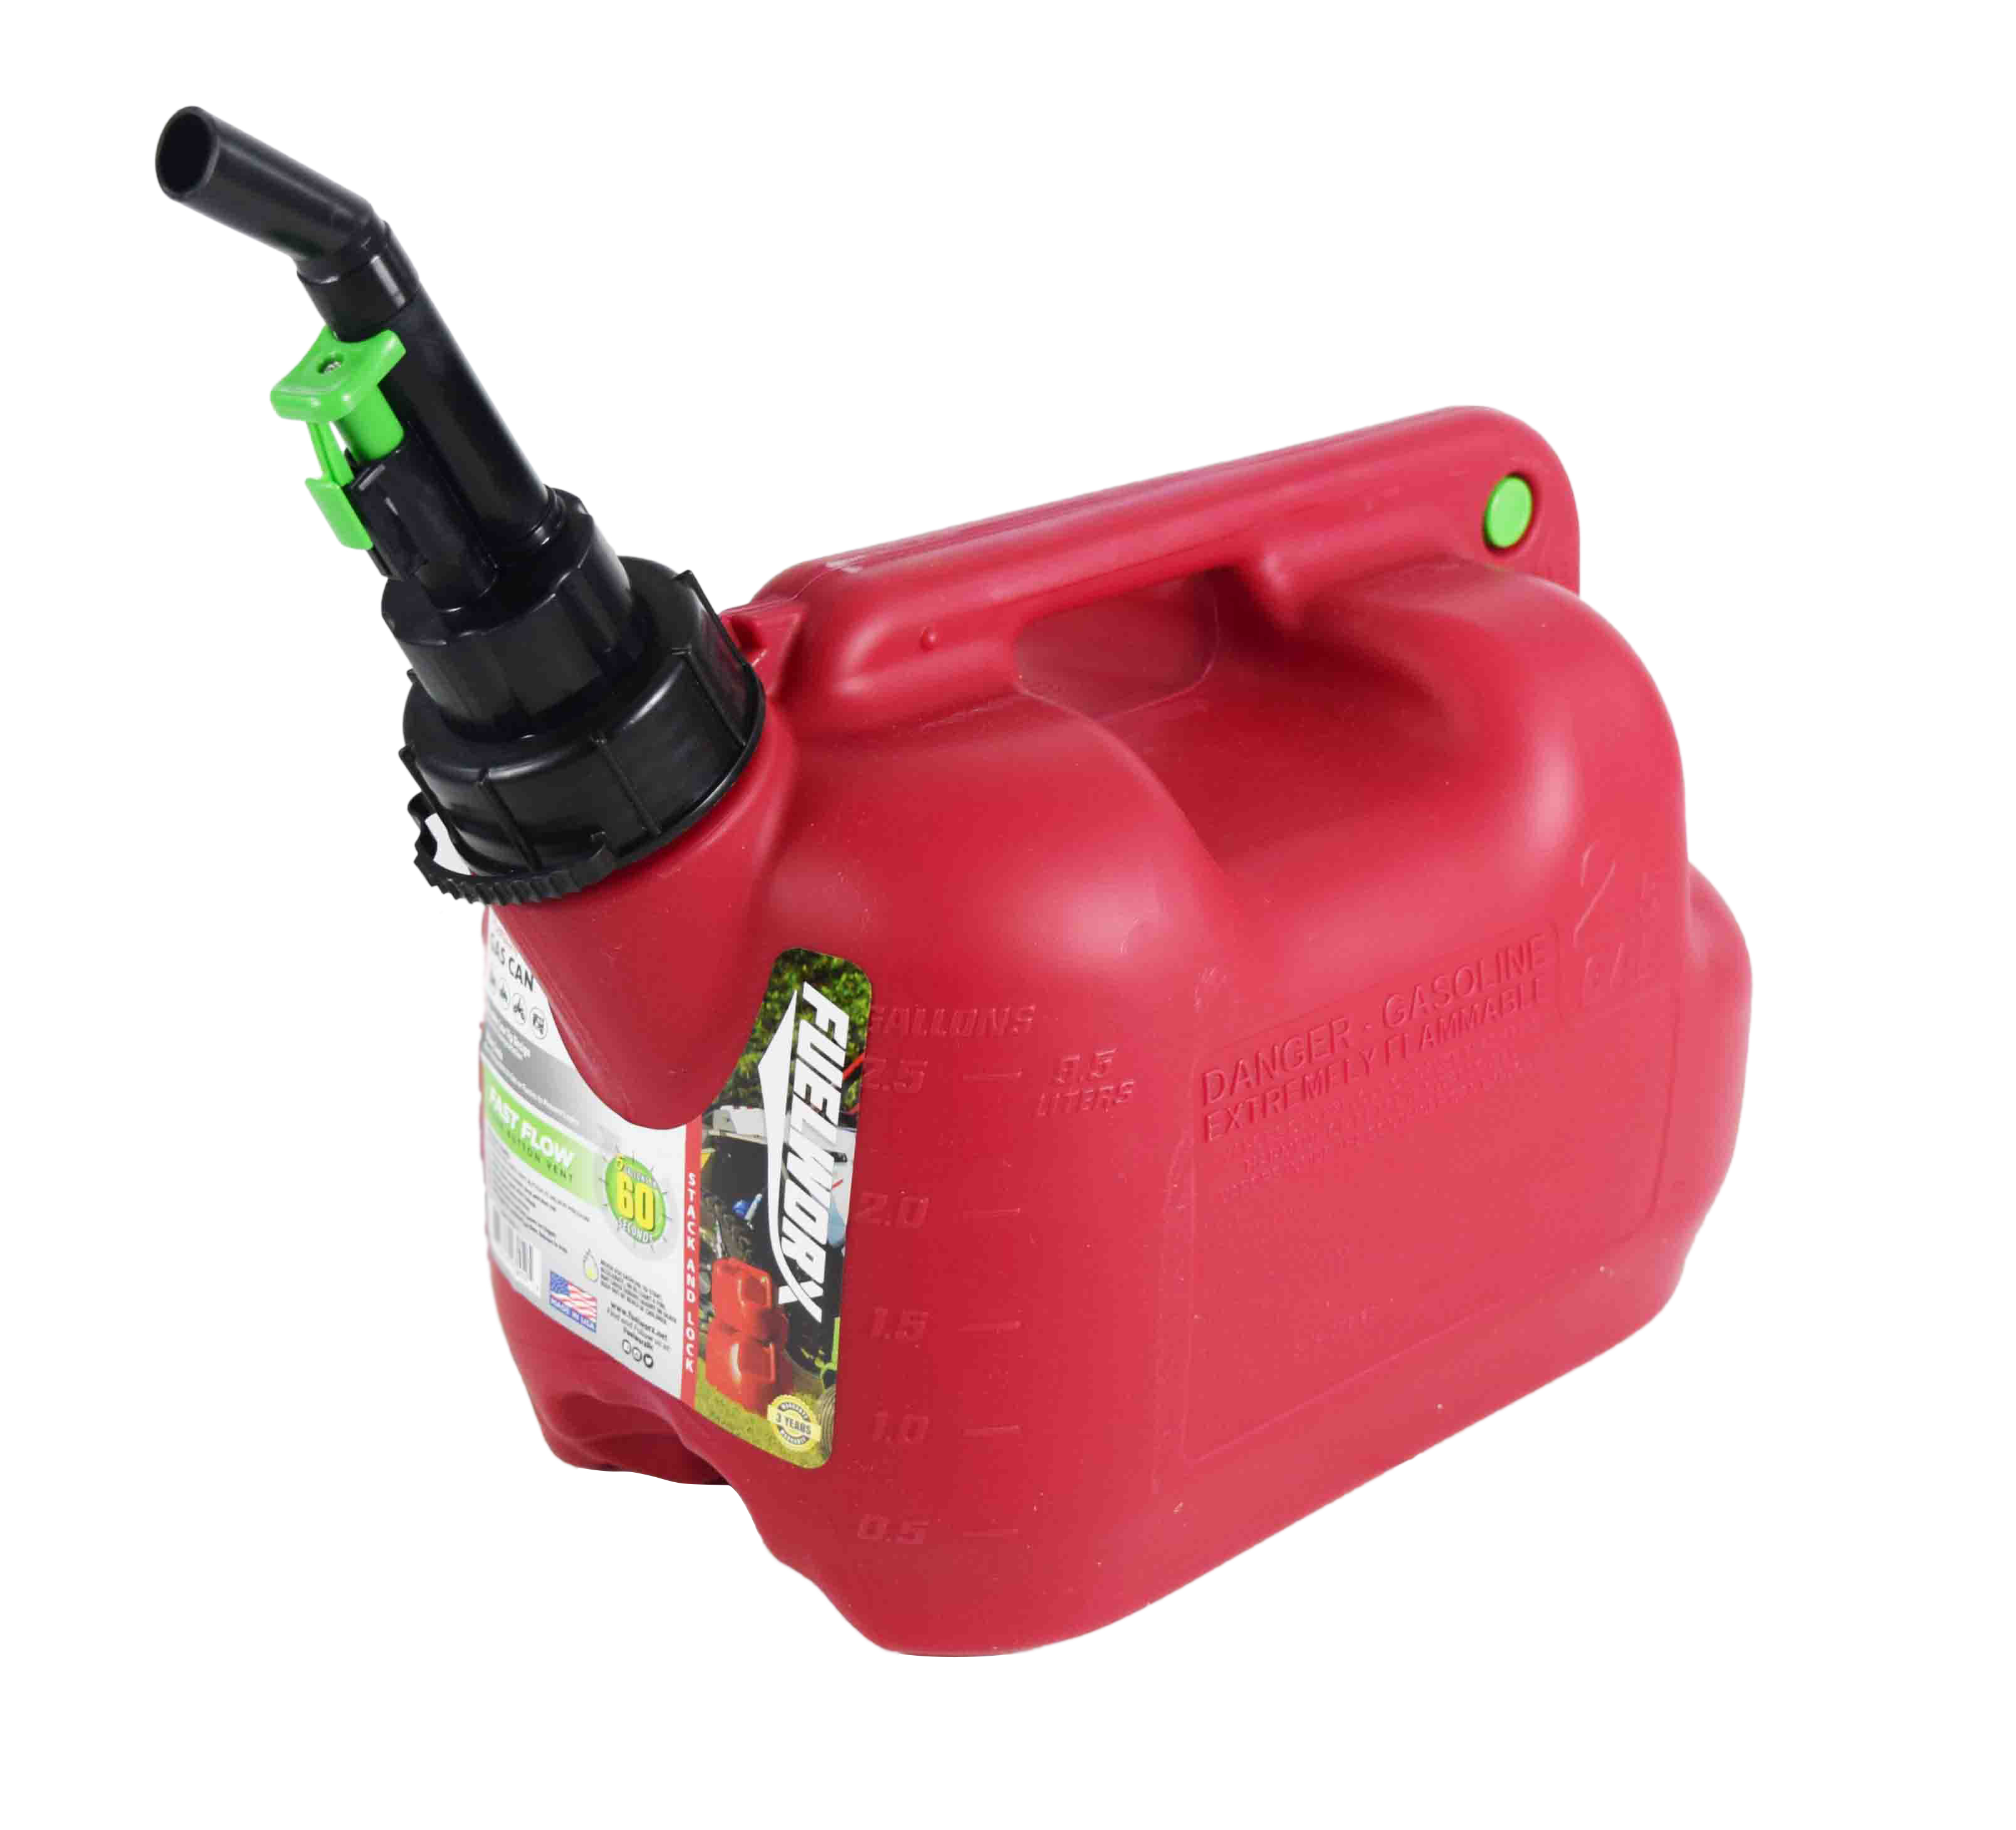 Fuelworx-Red-2.5-Gallon-Stackable-Fast-Pour-Gas-Fuel-Cans-CARB-Compliant-Made-in-The-USA-2.5-Gallon-Gas-Single-Can-image-4